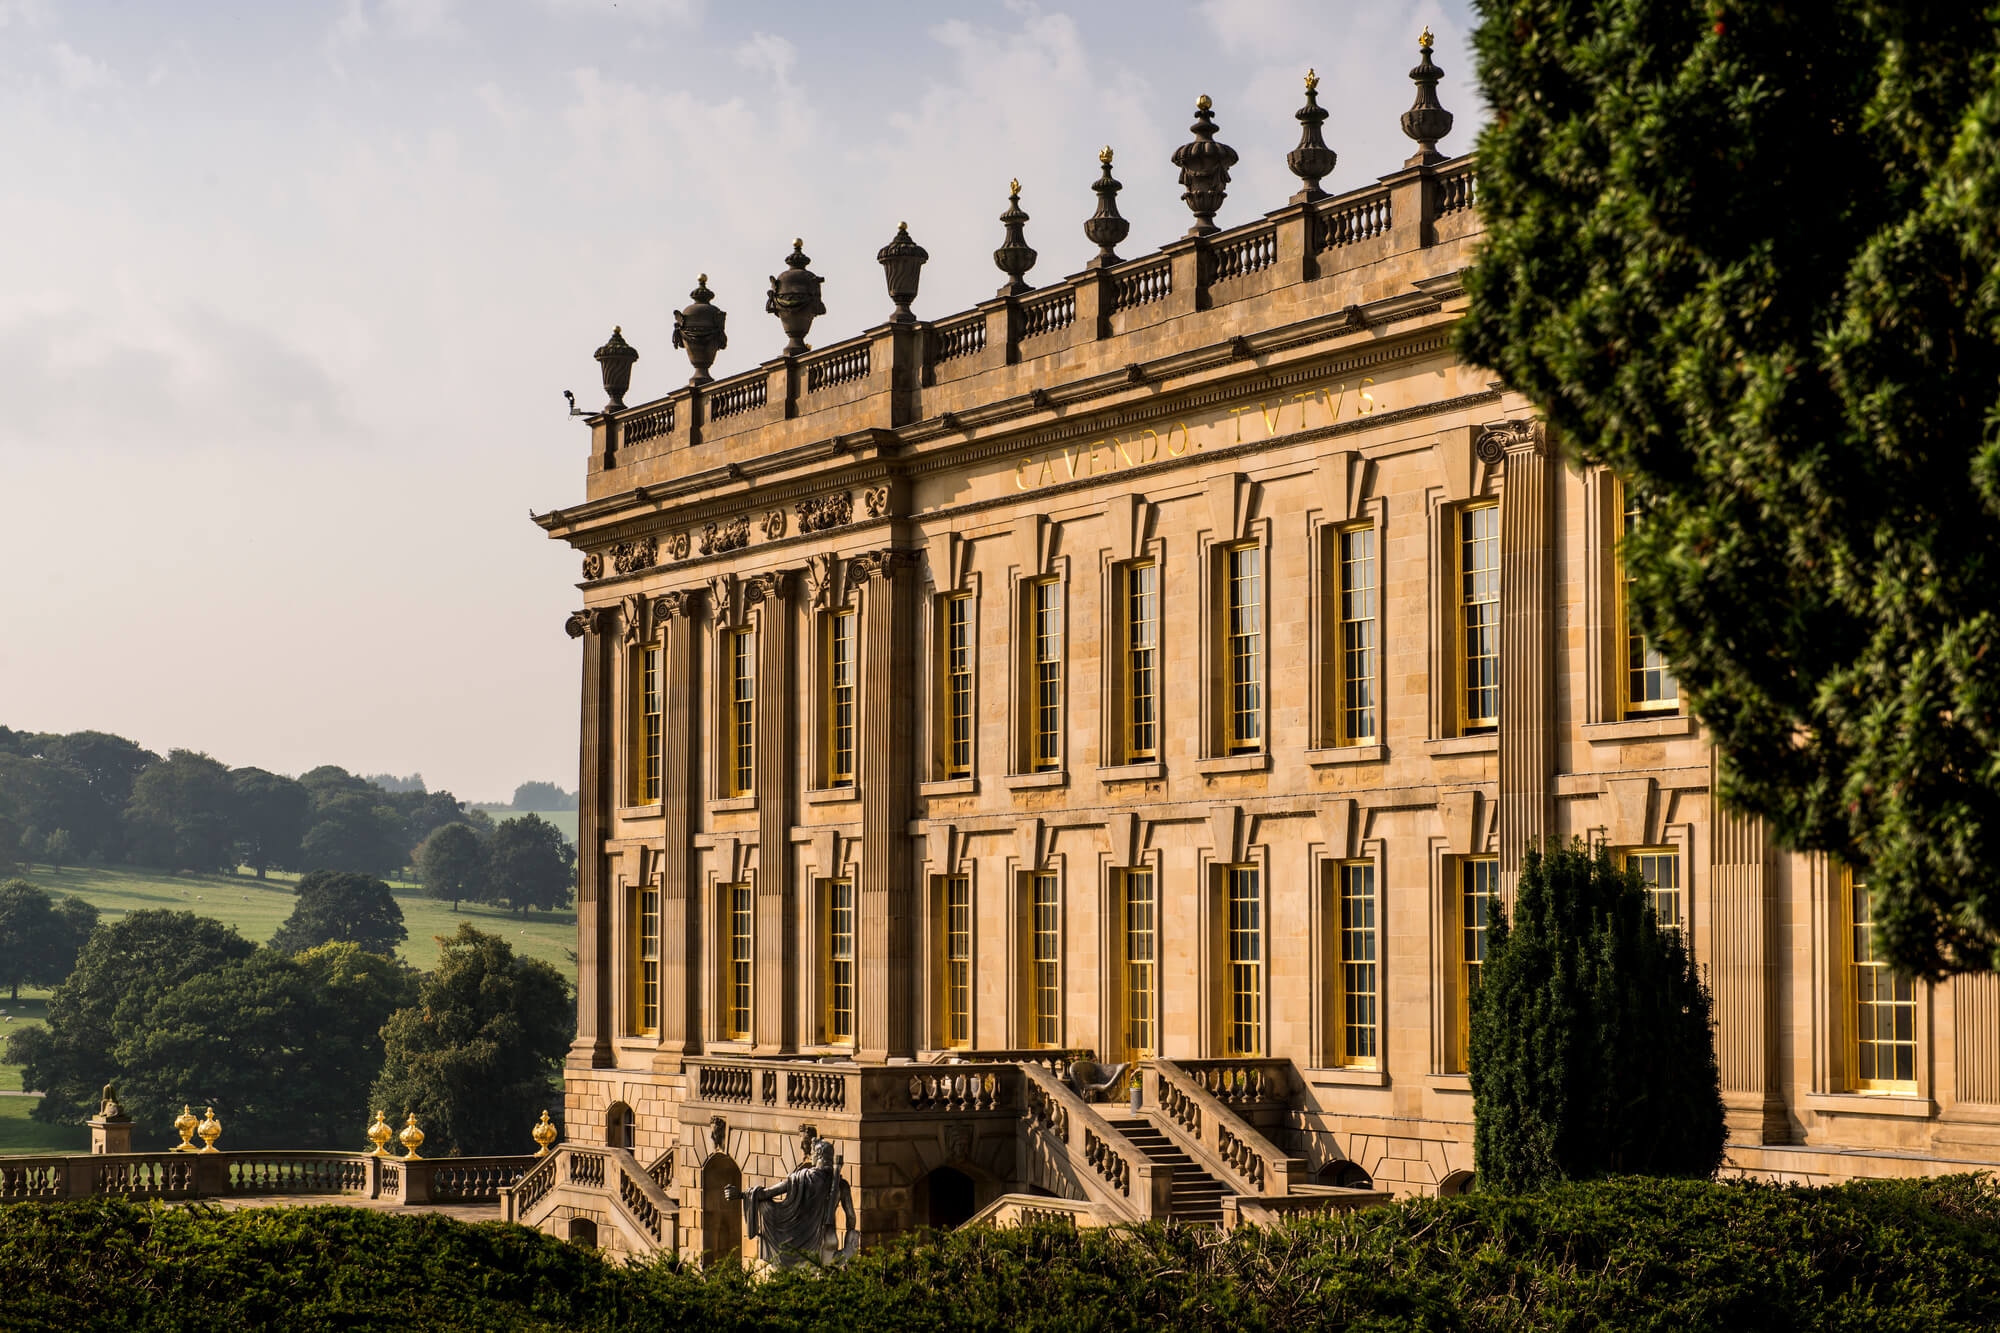 Close-up view of Chatsworth House